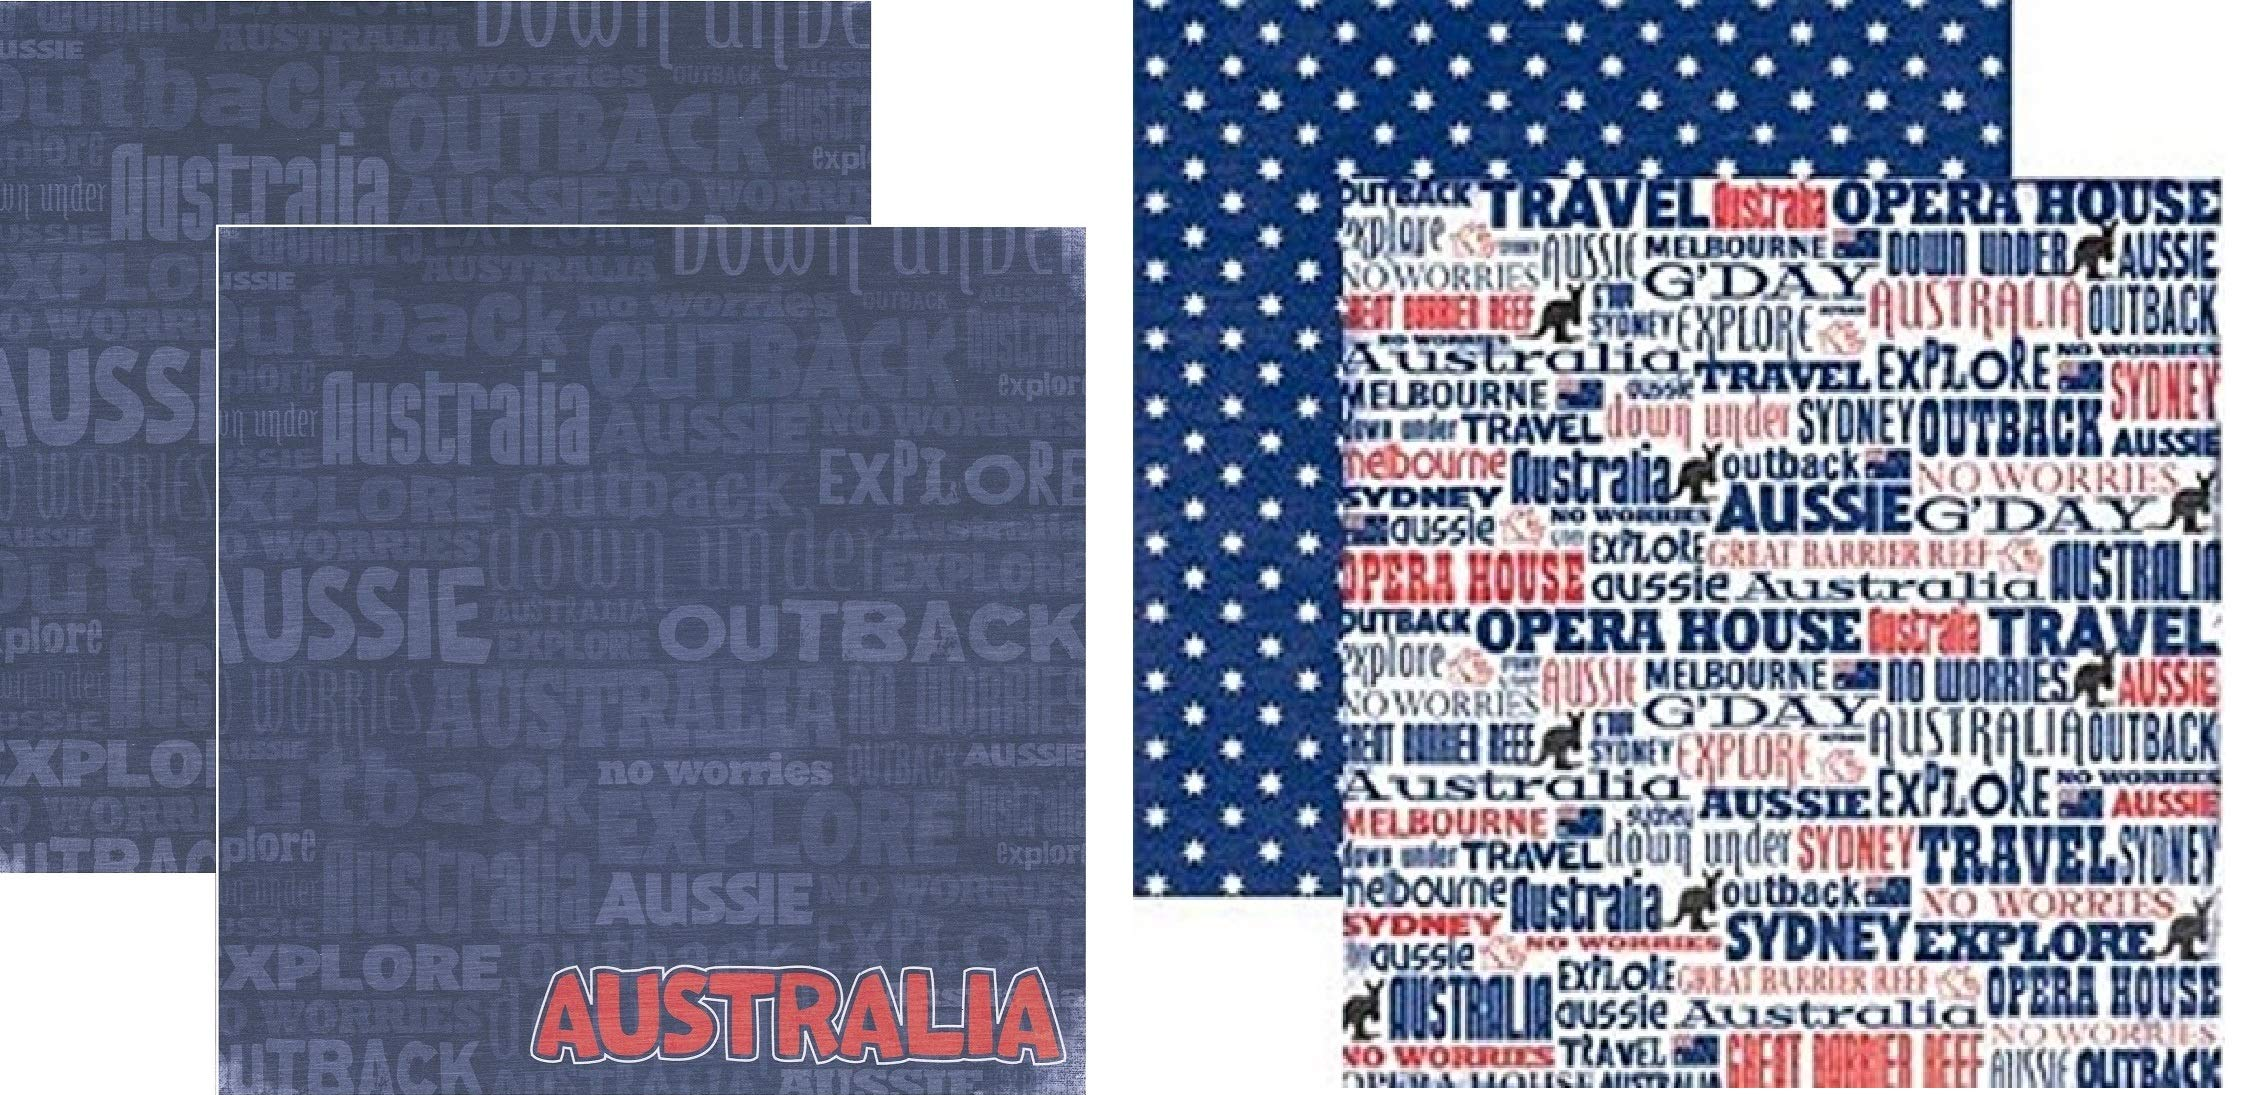 Australia 12x12 Scrapbook Papers Set by Reminisce - 2pcs